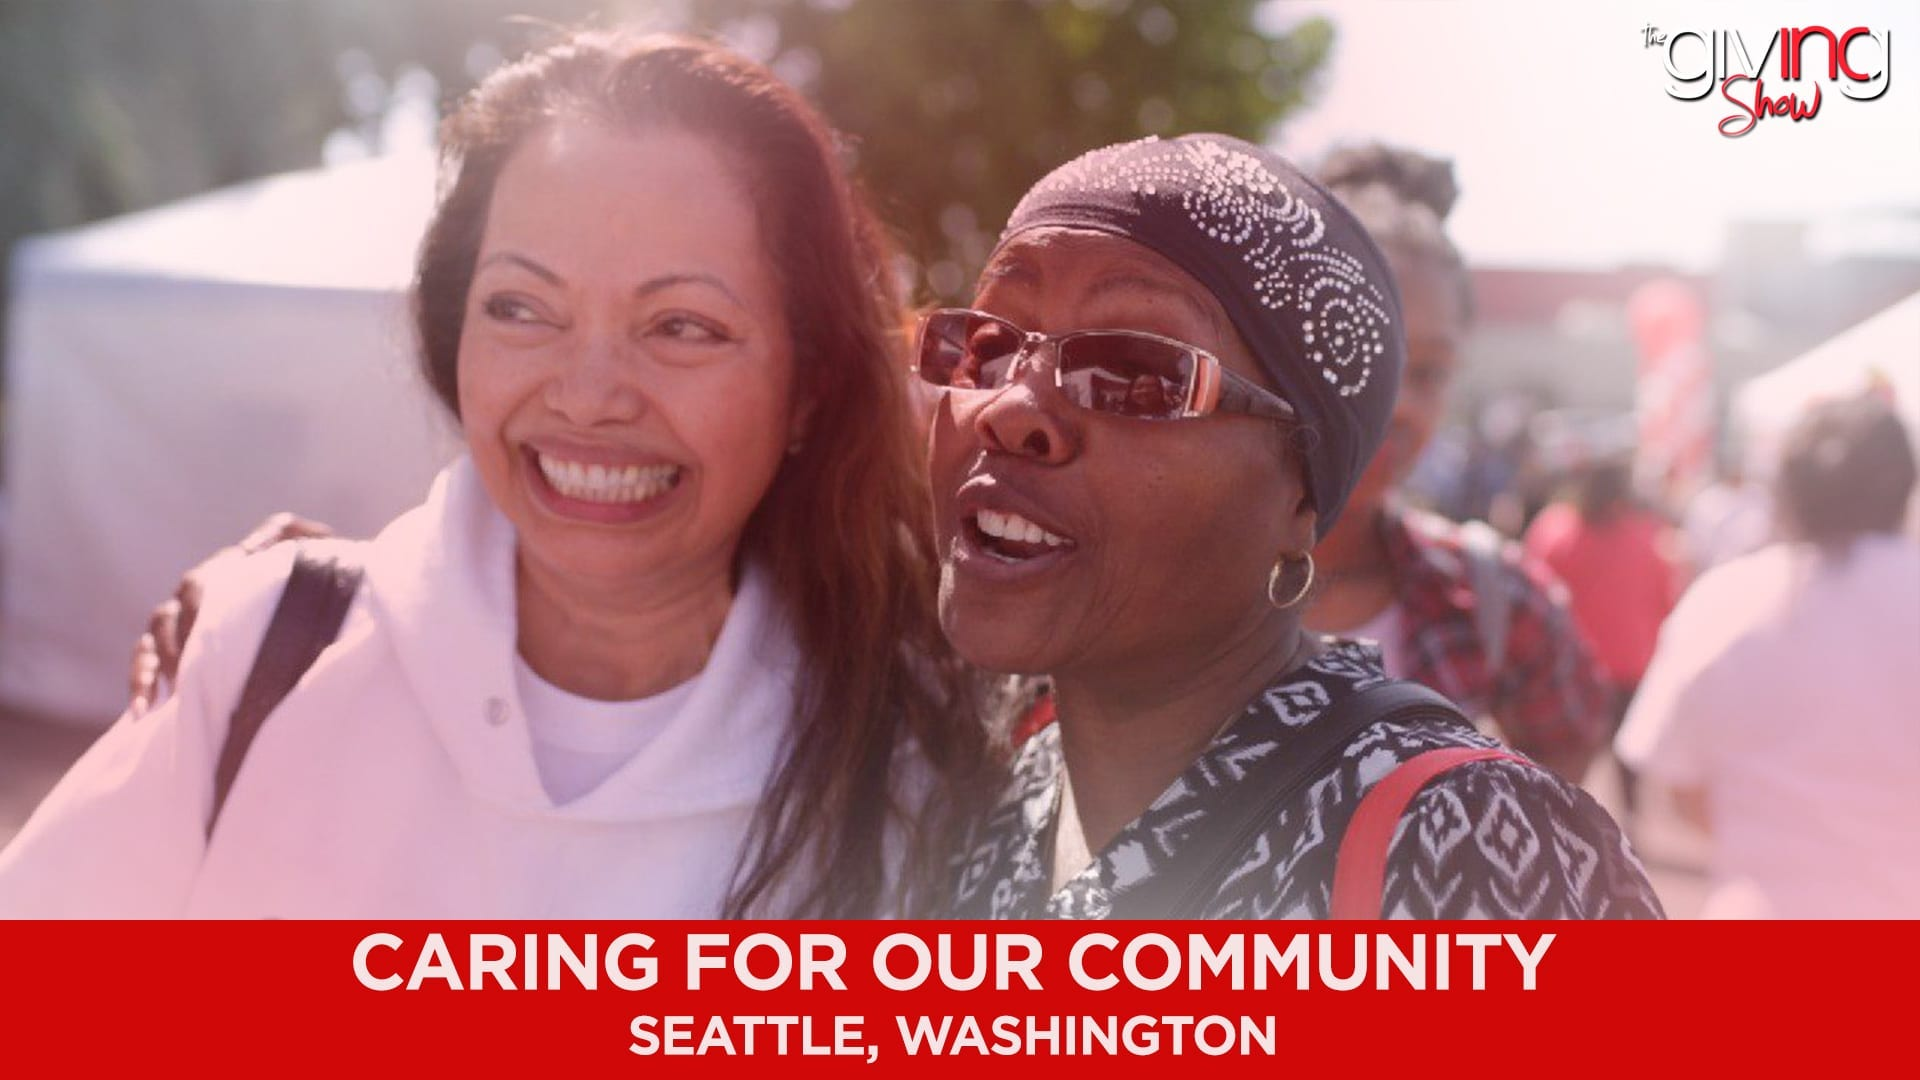 Caring For Our Community in Seattle